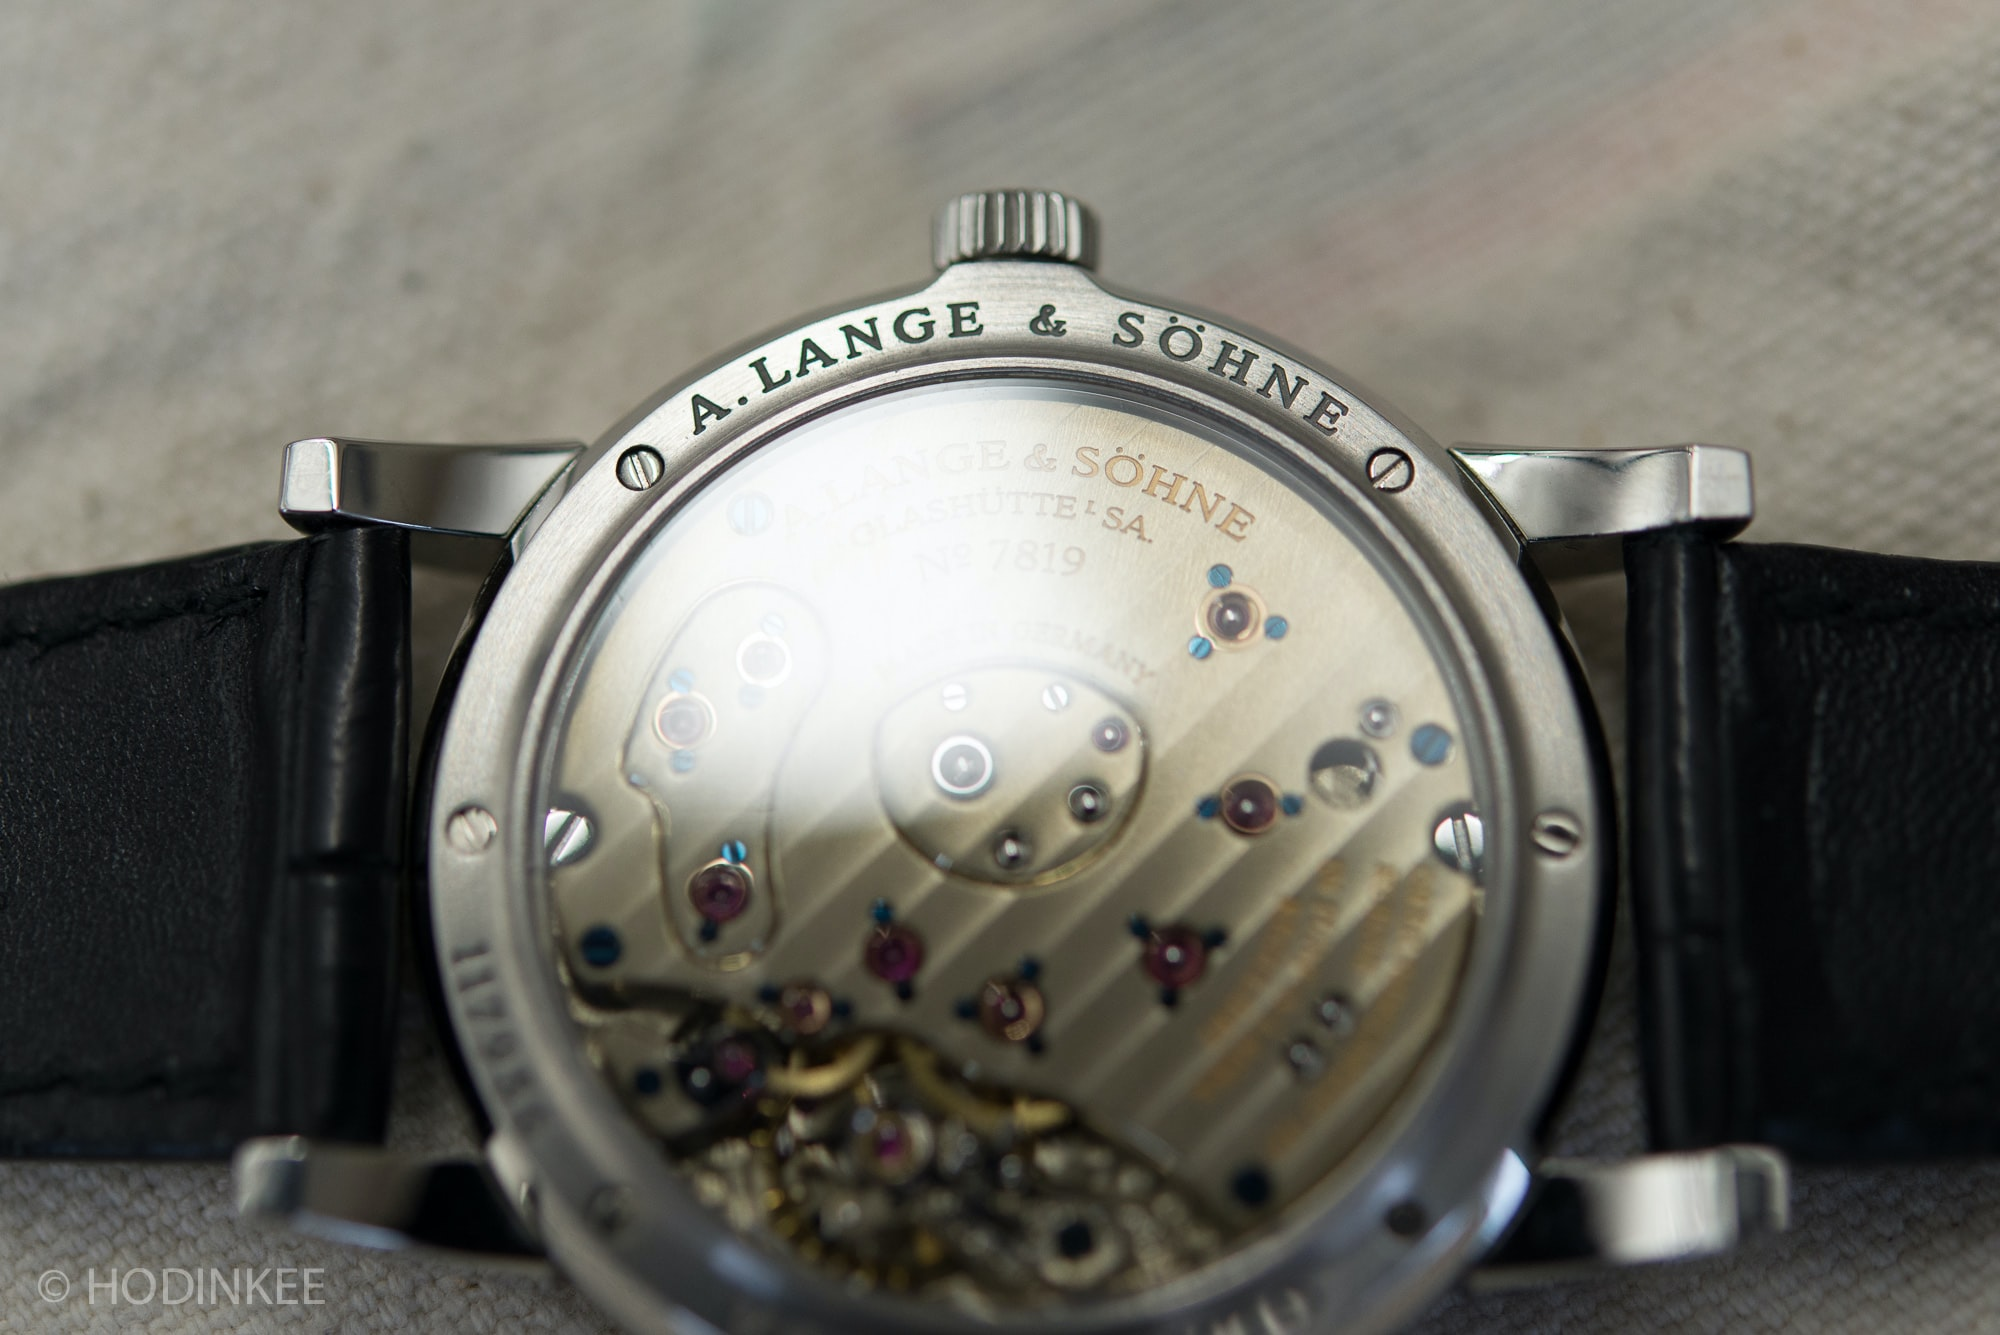 Breaking News: Christie's To Offer Mega Rare Steel Lange 1 With Black Dial In June (Live Pics, Estimates) Breaking News: Christie's To Offer Mega Rare Steel Lange 1 With Black Dial In June (Live Pics, Estimates) Lange1SteelBlackDial 3